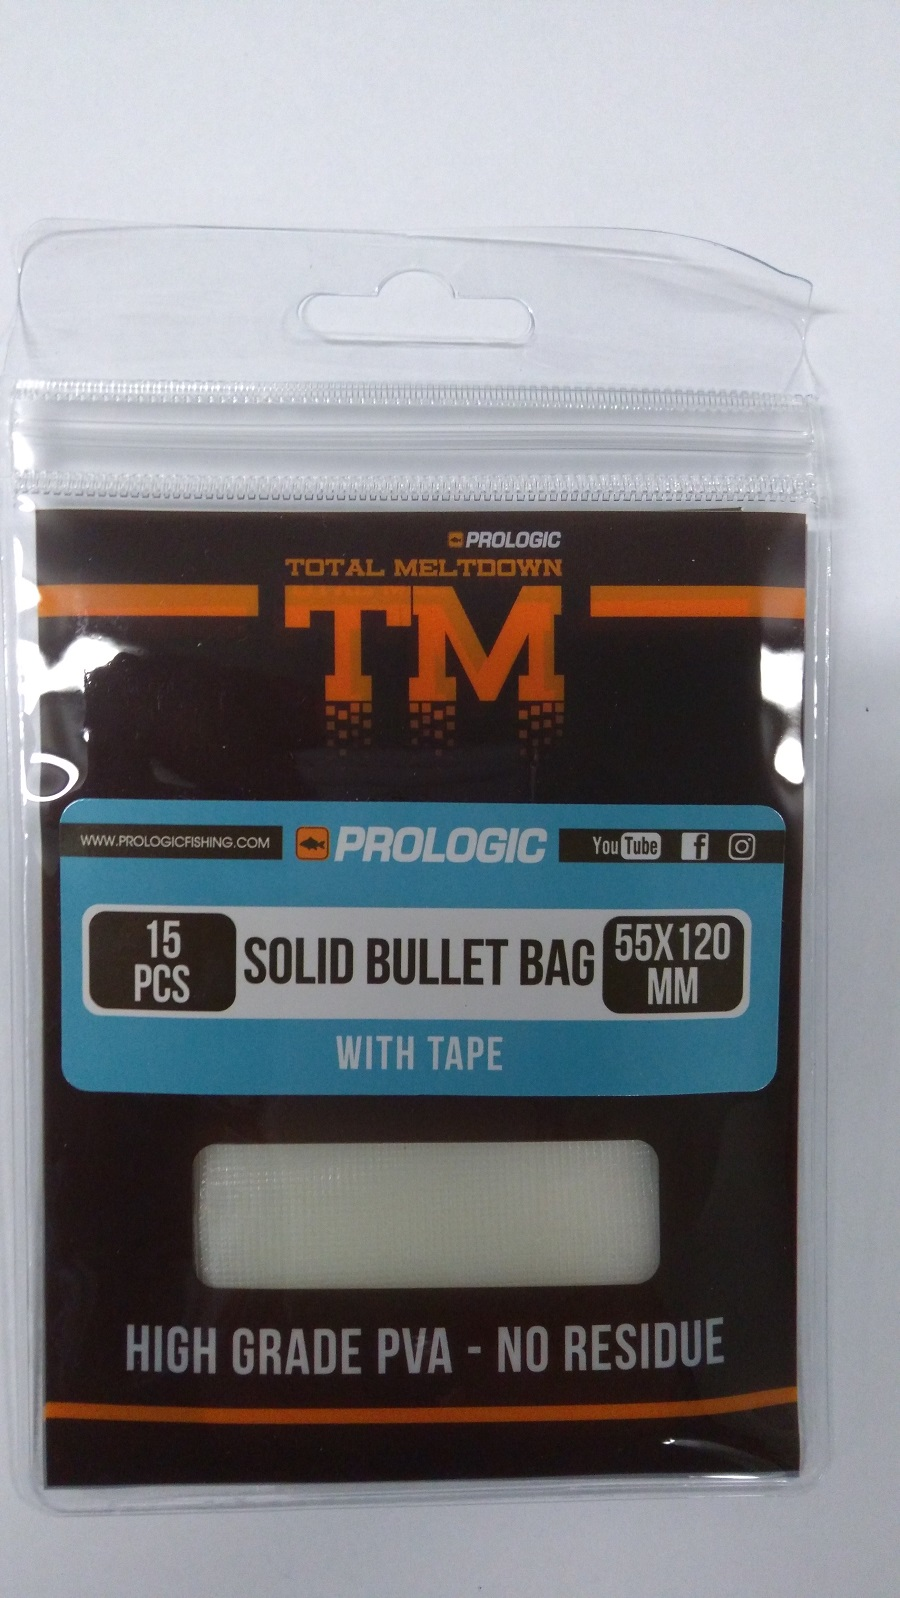 Пва пакеты Prologic TM PVA Solid Bullet Bag с ниткой 55x120 мм. 15 шт